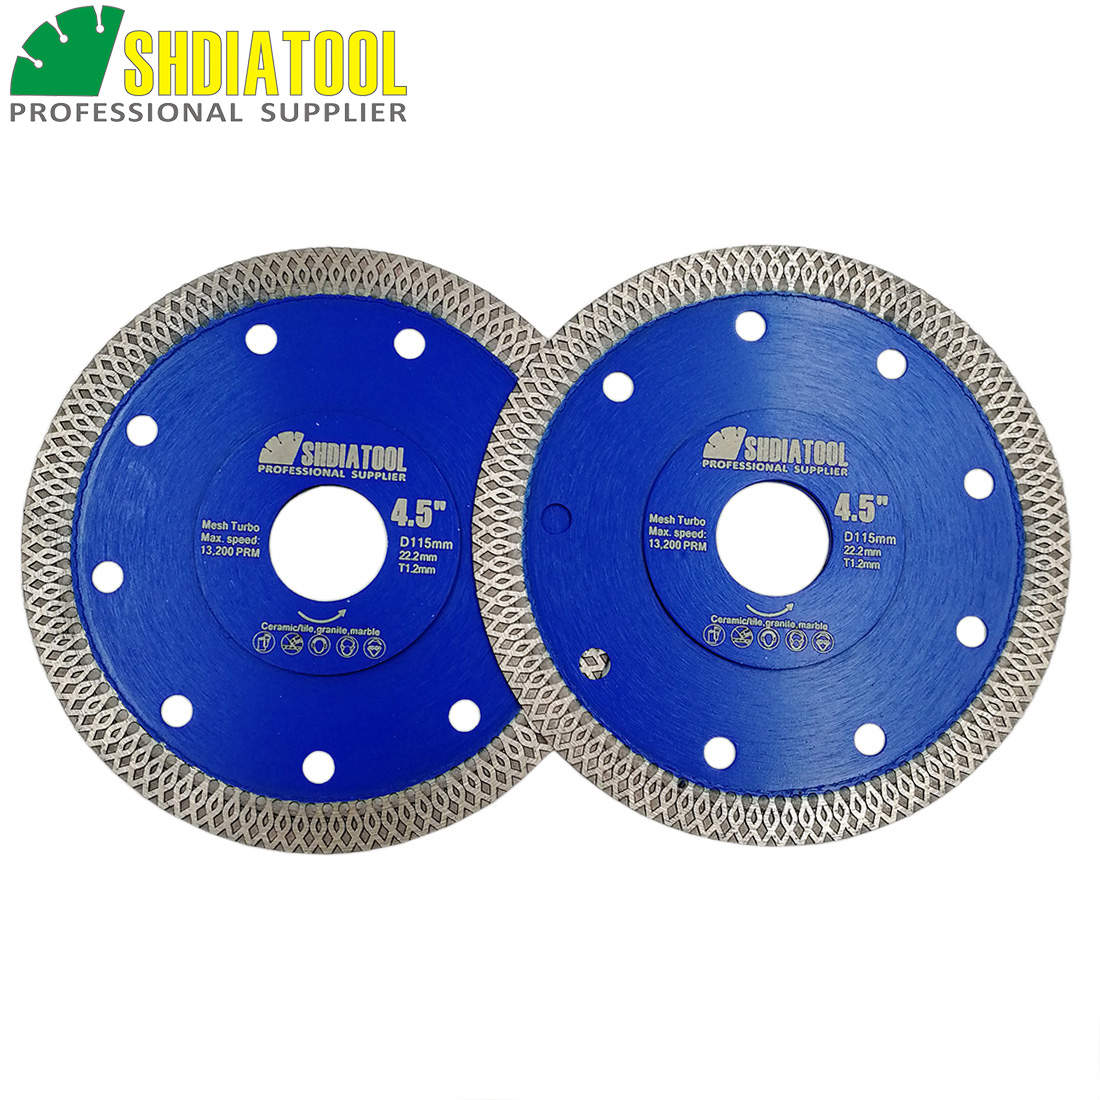 SHDIATOOL 2pcs 115mm Hot Pressed X Mesh Turbo Diamond Saw Blades Ceramic Tile Cutting Disc Marble Granite Circular Saw Blade